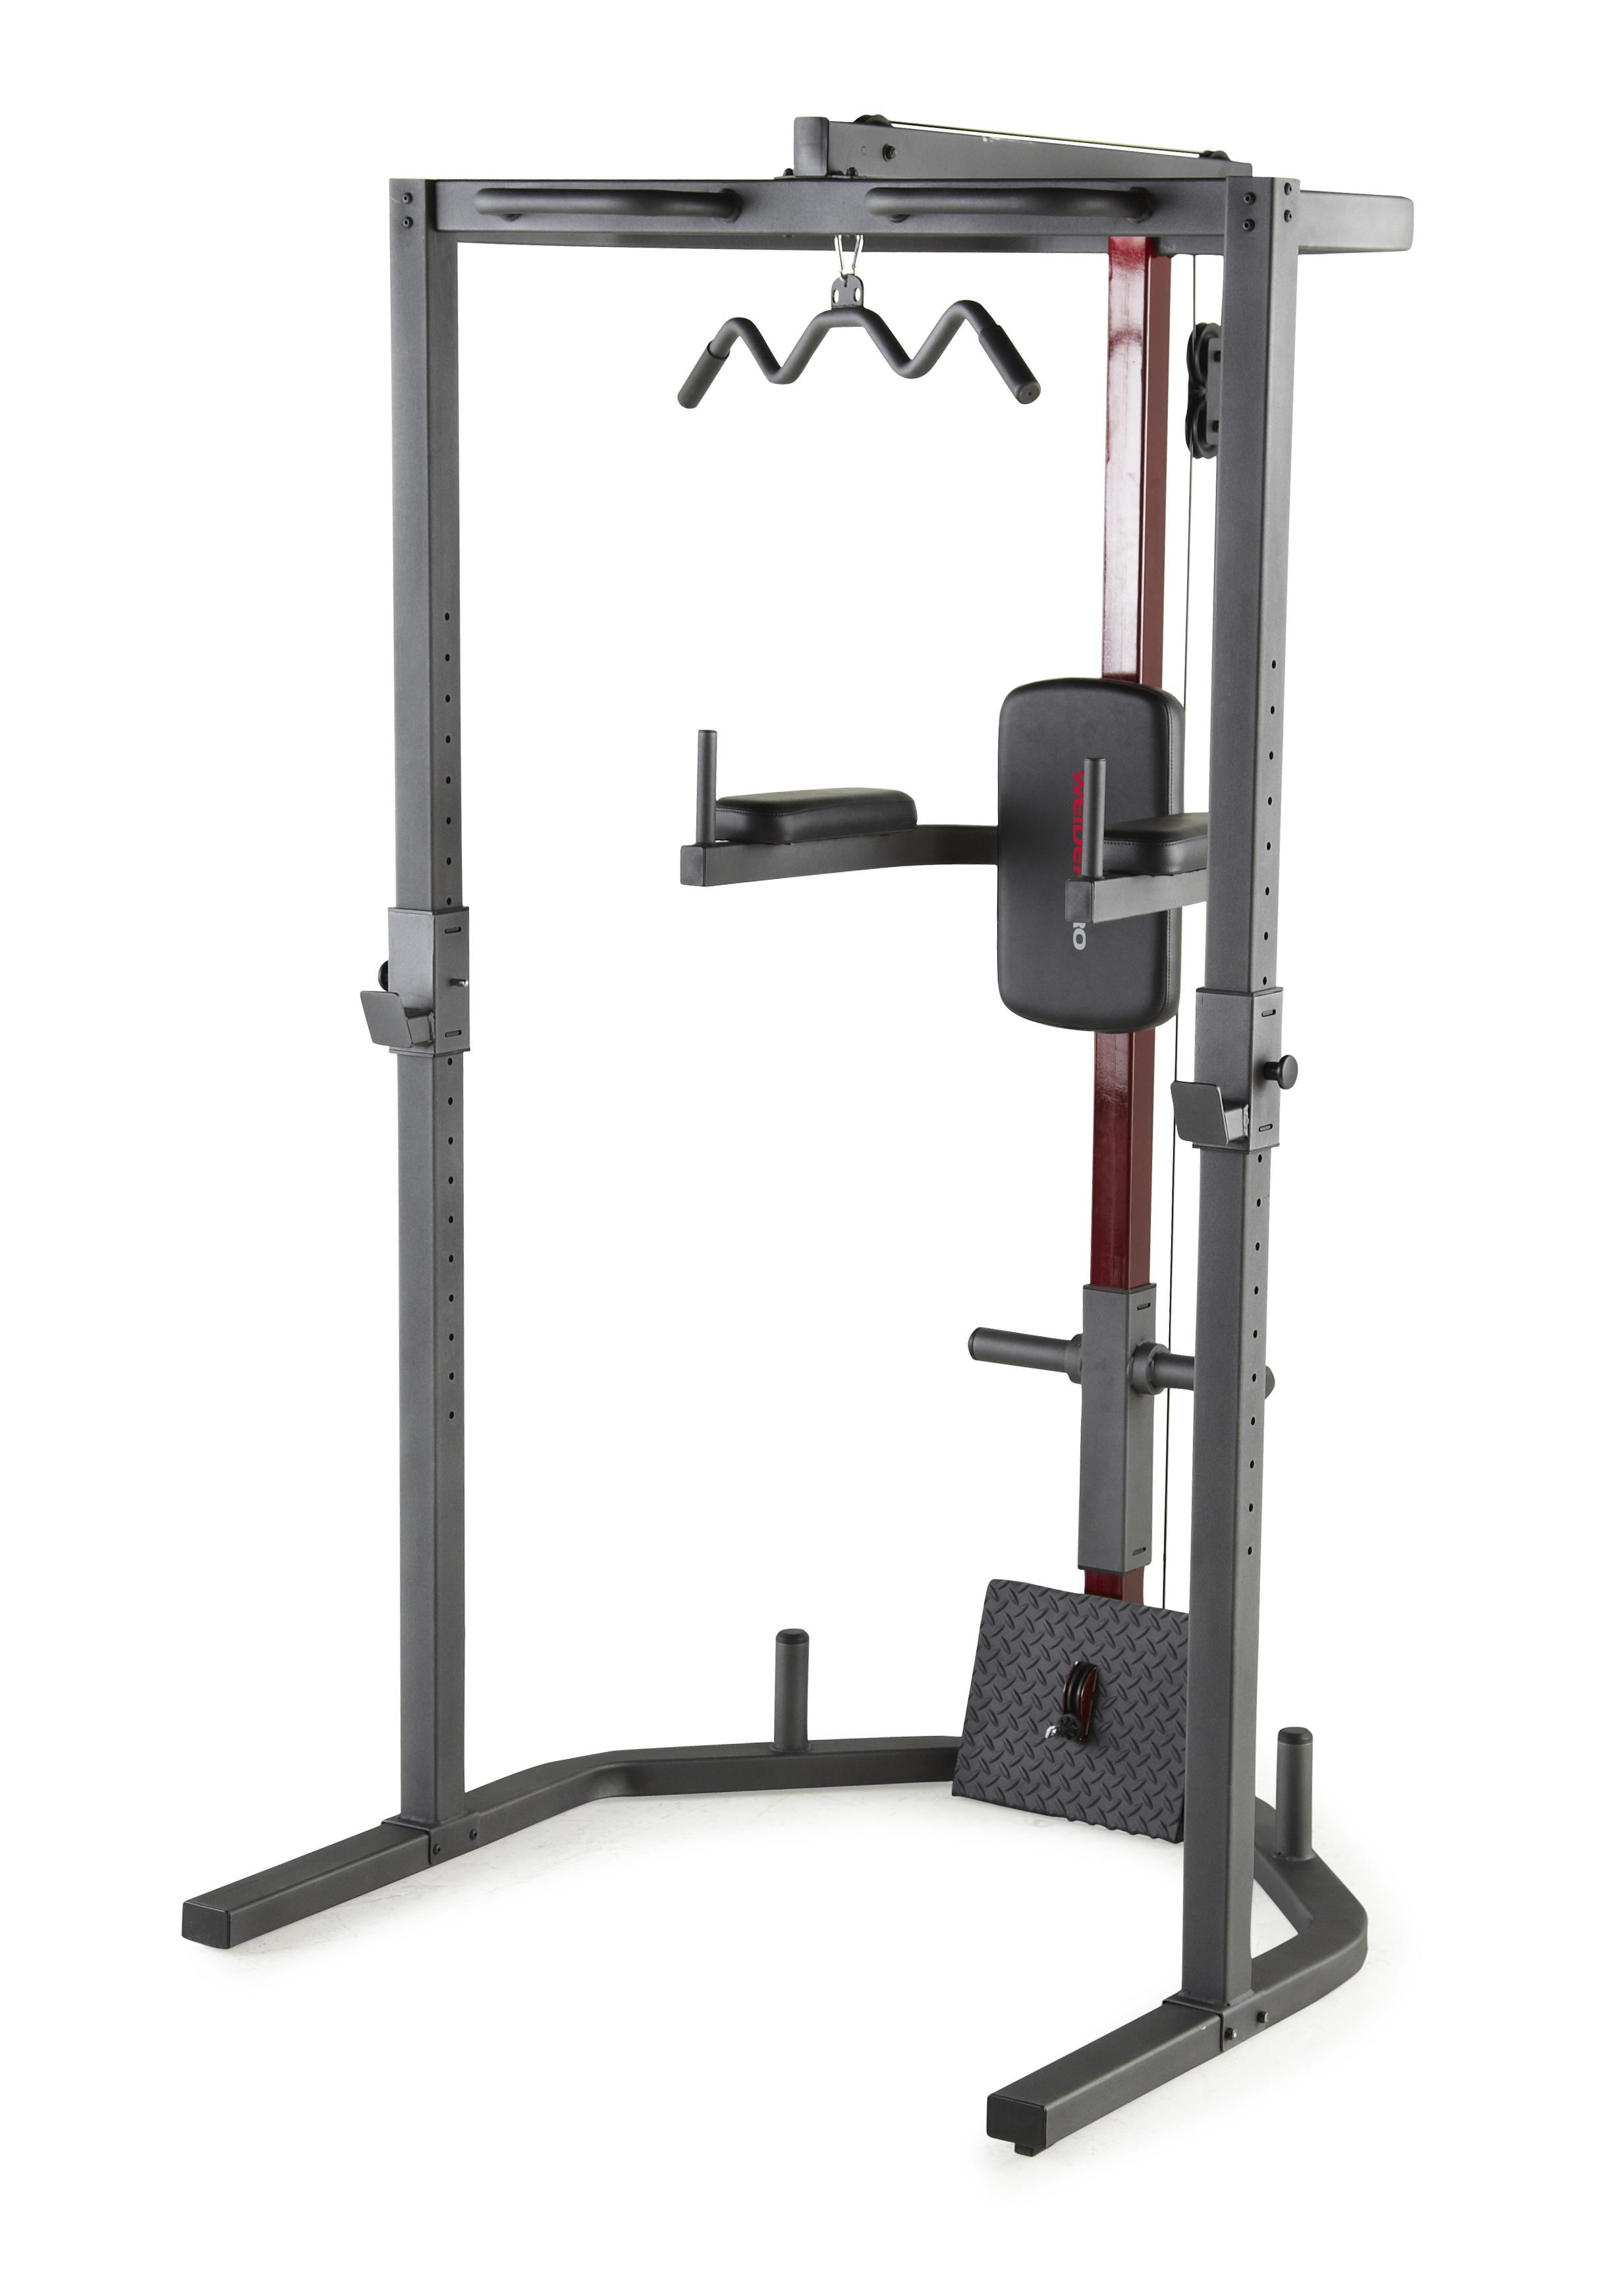 150kg per cable commercial home gym